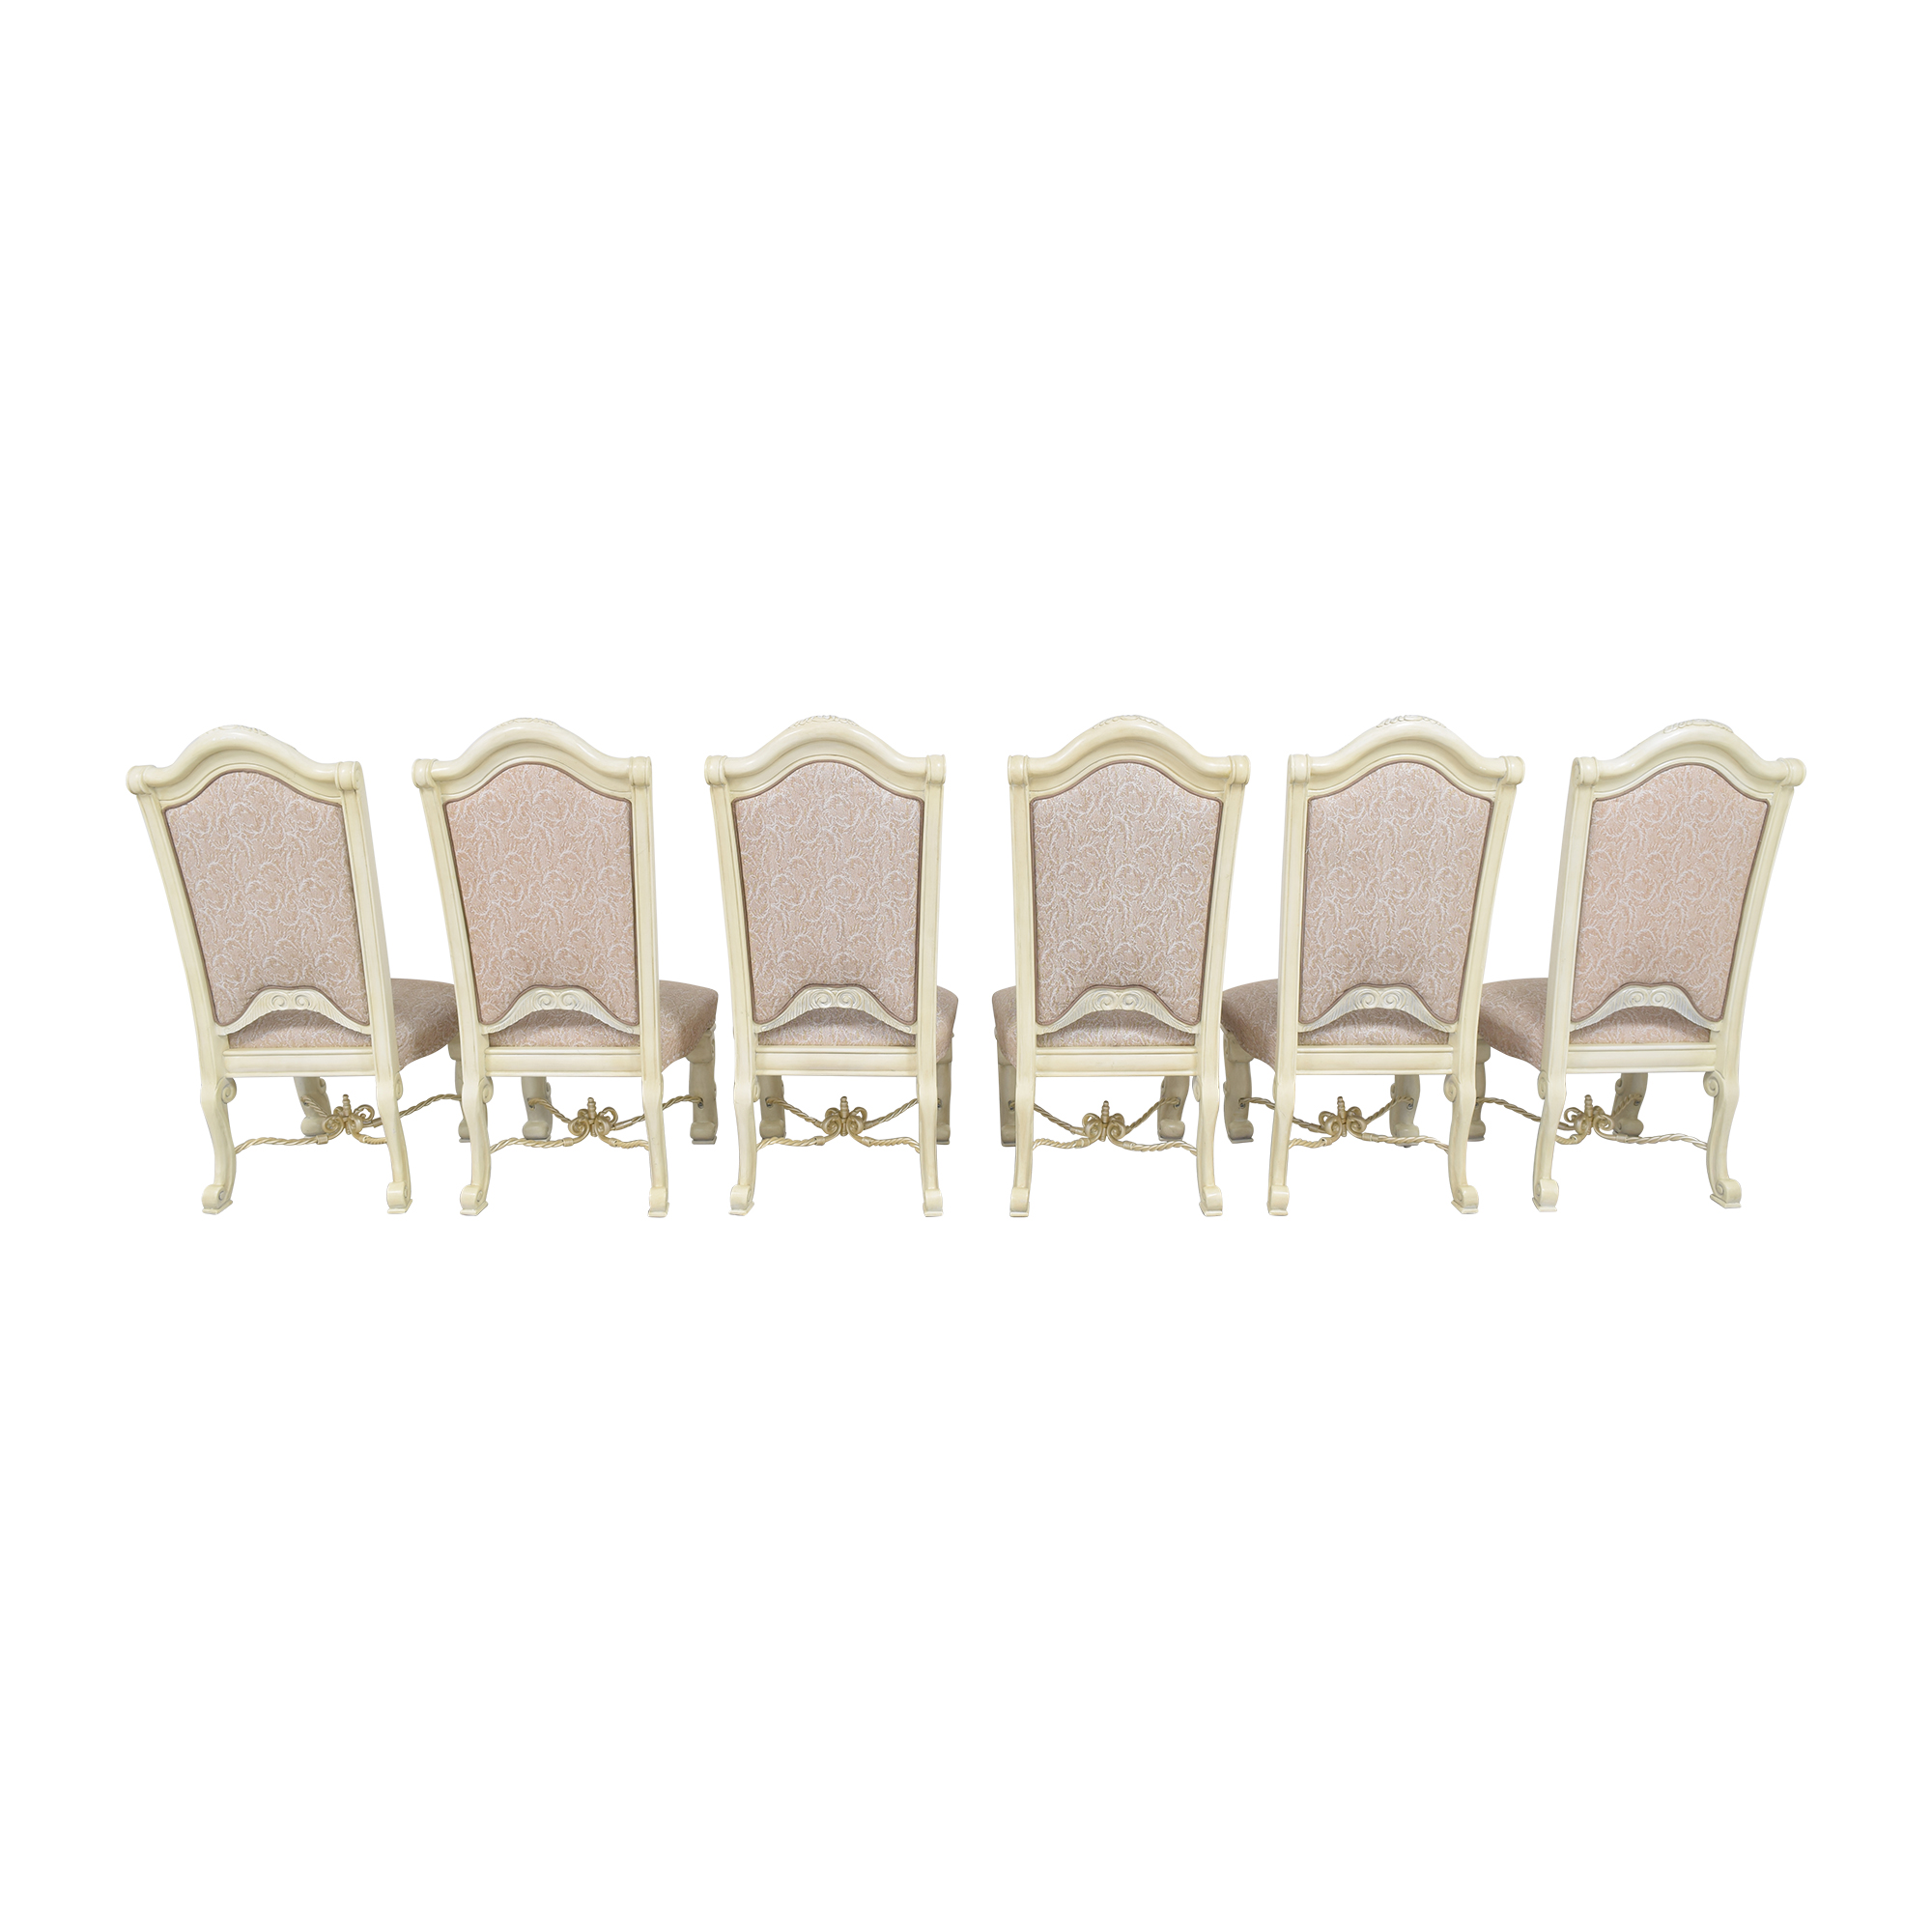 AICO Furniture Monte Carlo Snow Dining Side Chairs / Dining Chairs